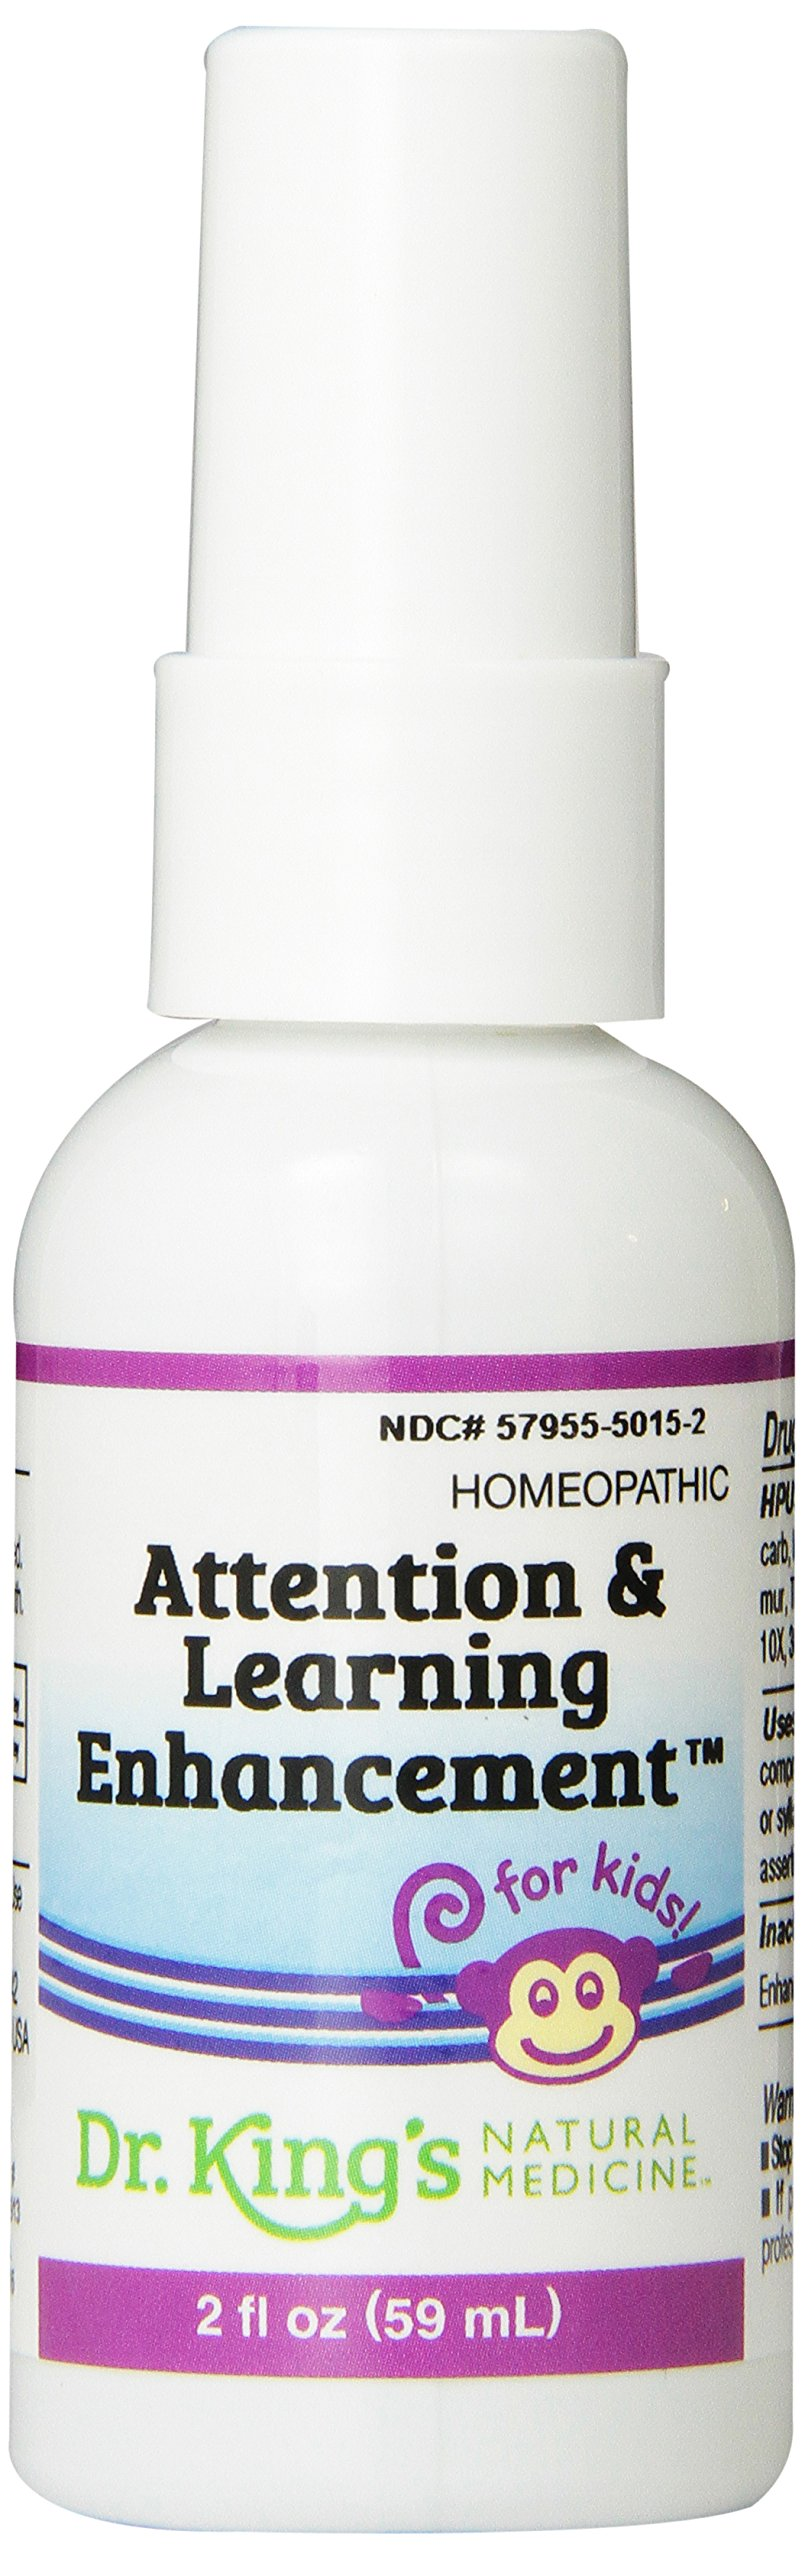 Dr. King's Natural Medicine Attention and Learning Enhancement, 2 Fluid Ounce